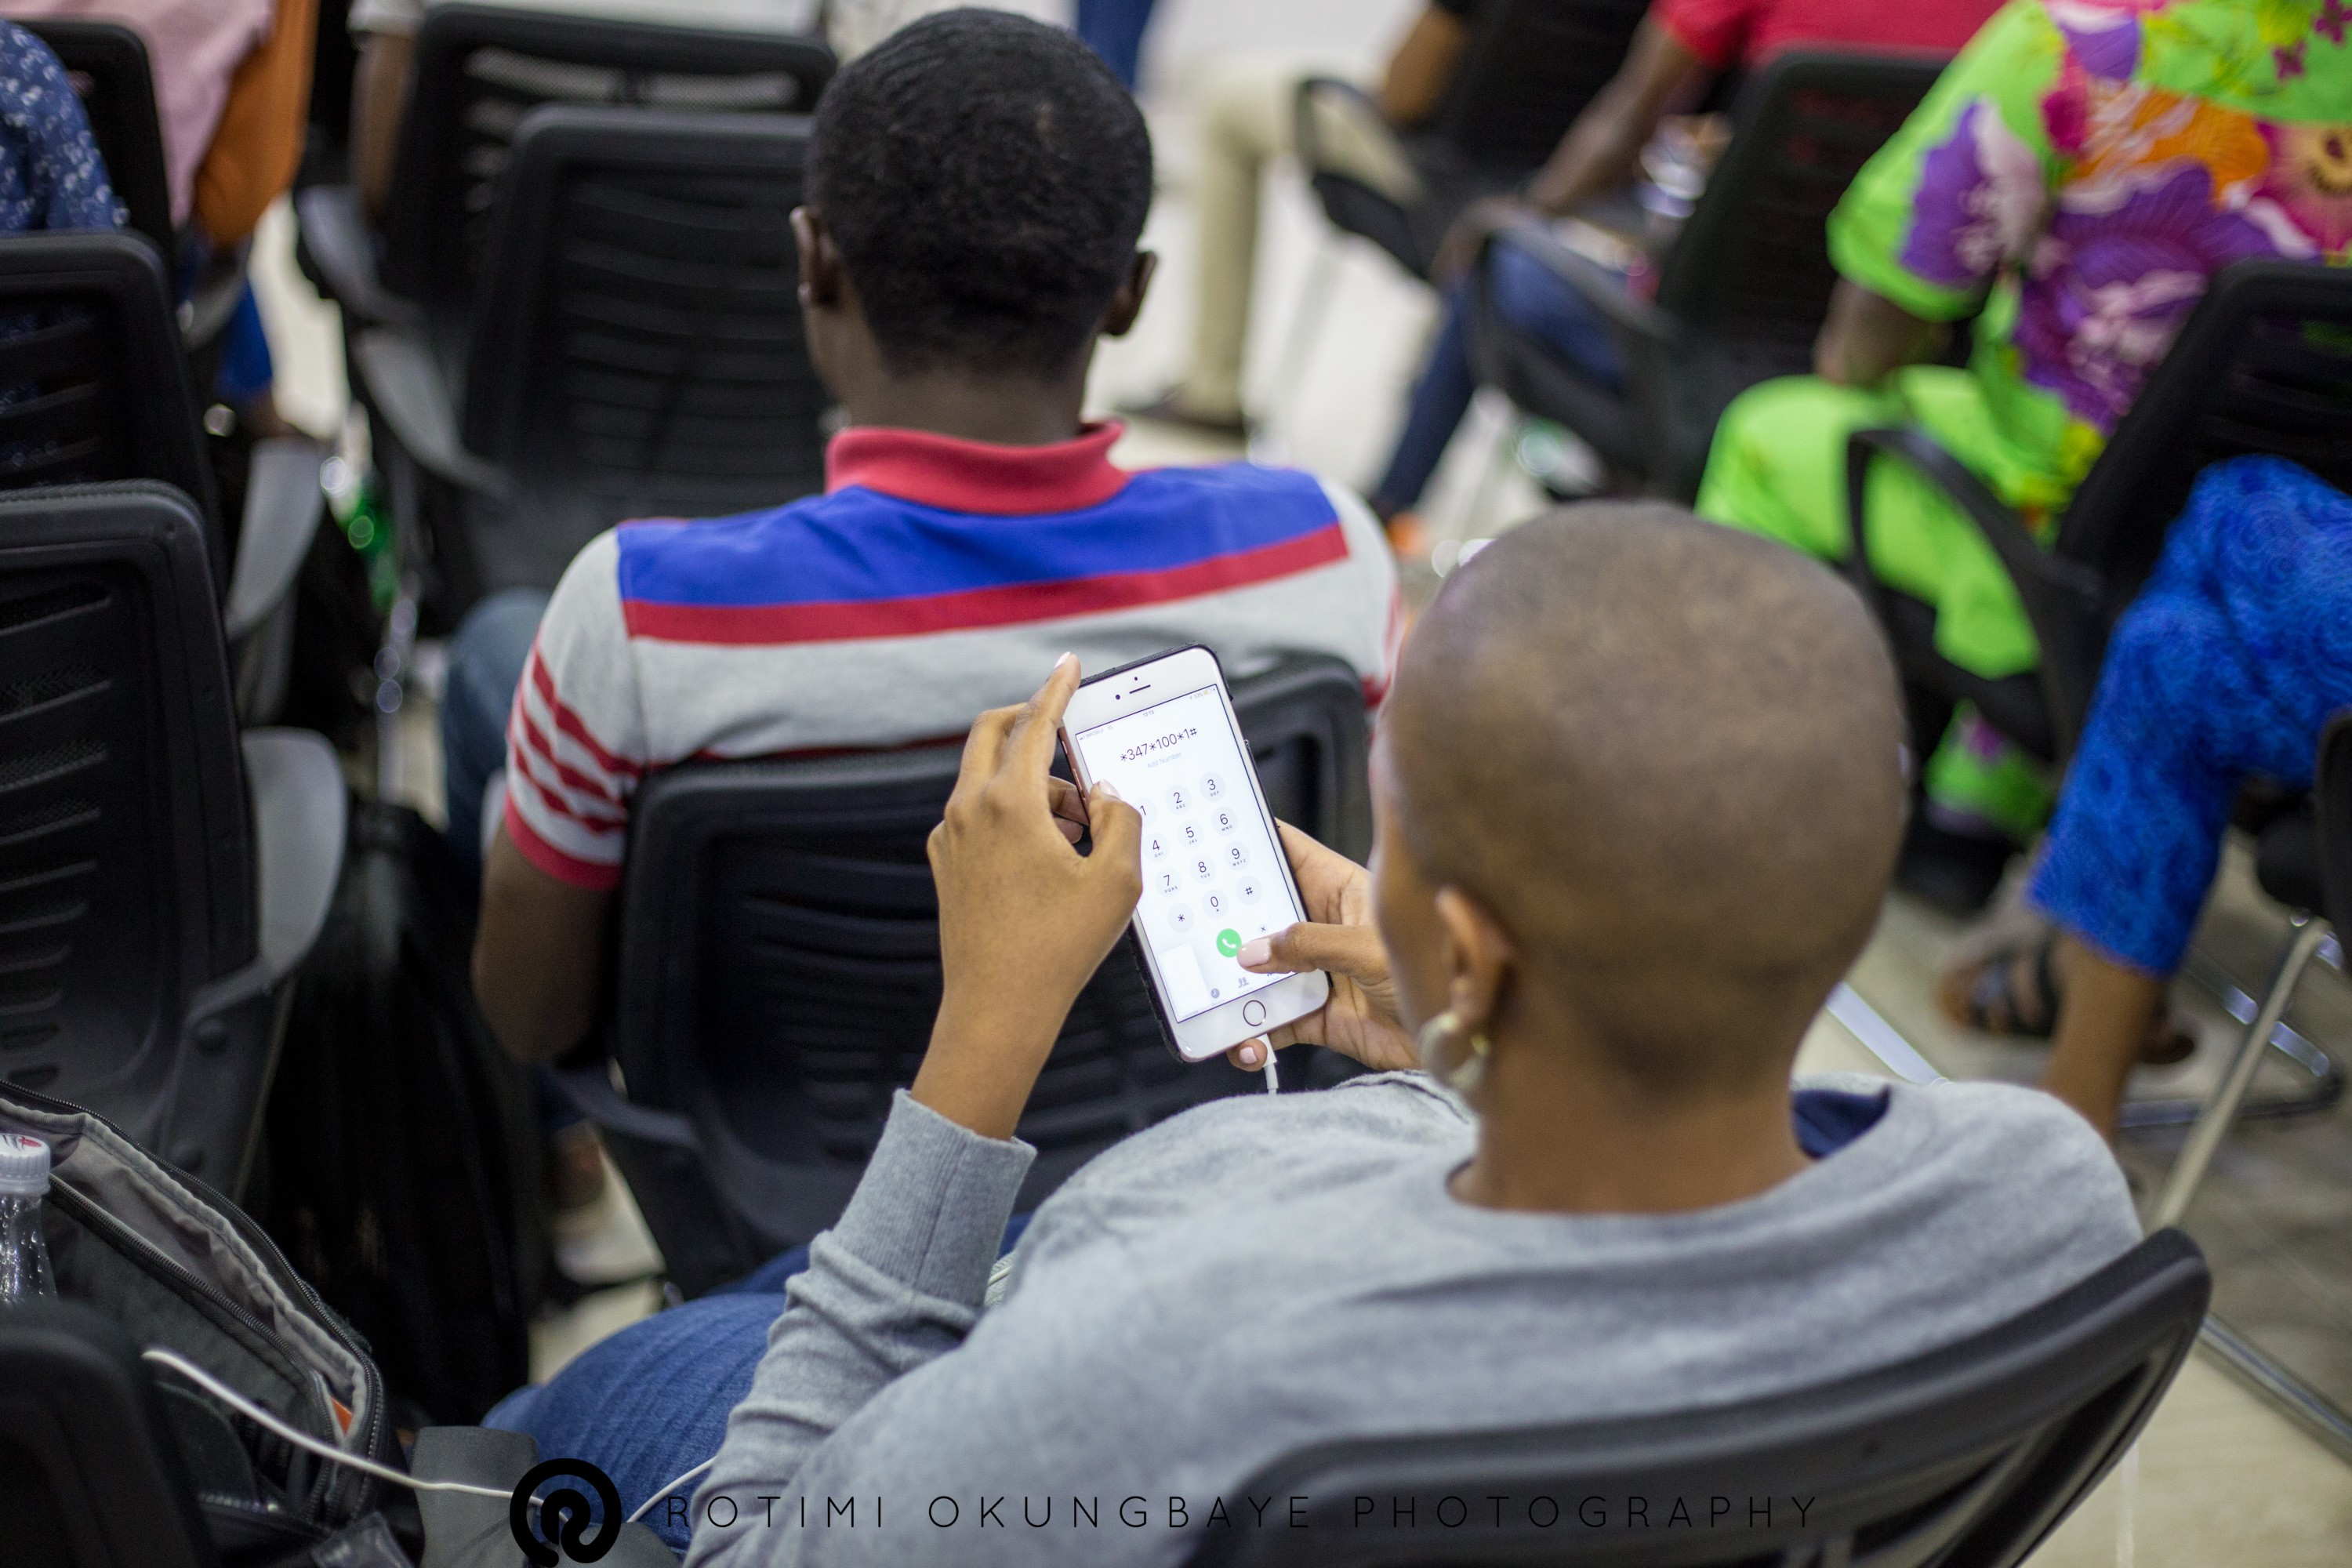 Launching Offline Payments in Nigeria - Africa's Talking